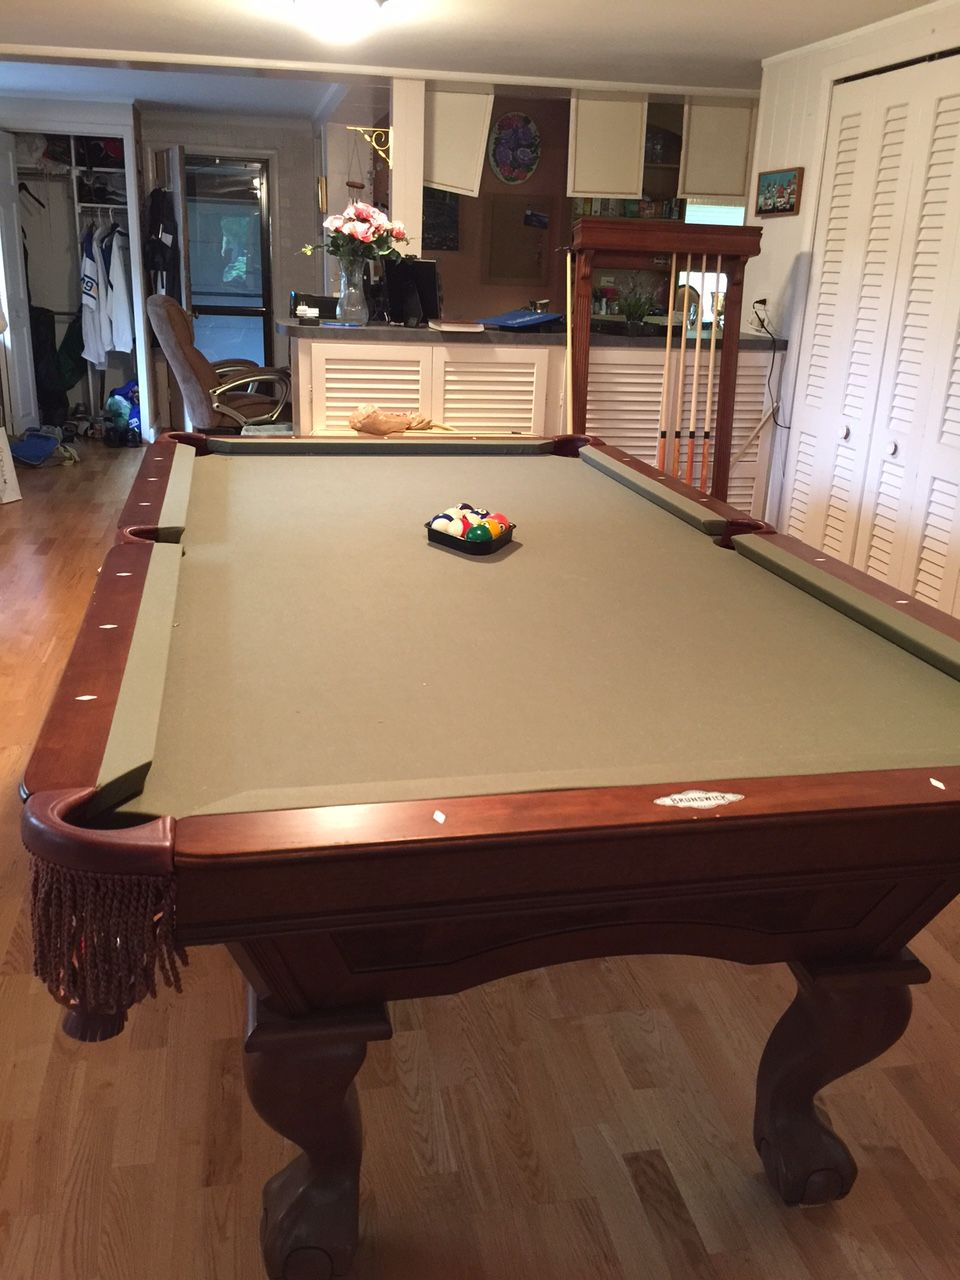 Brunswick Billiards Danbury Pool Table Sold Used Pool Tables - Brunswick brentwood pool table